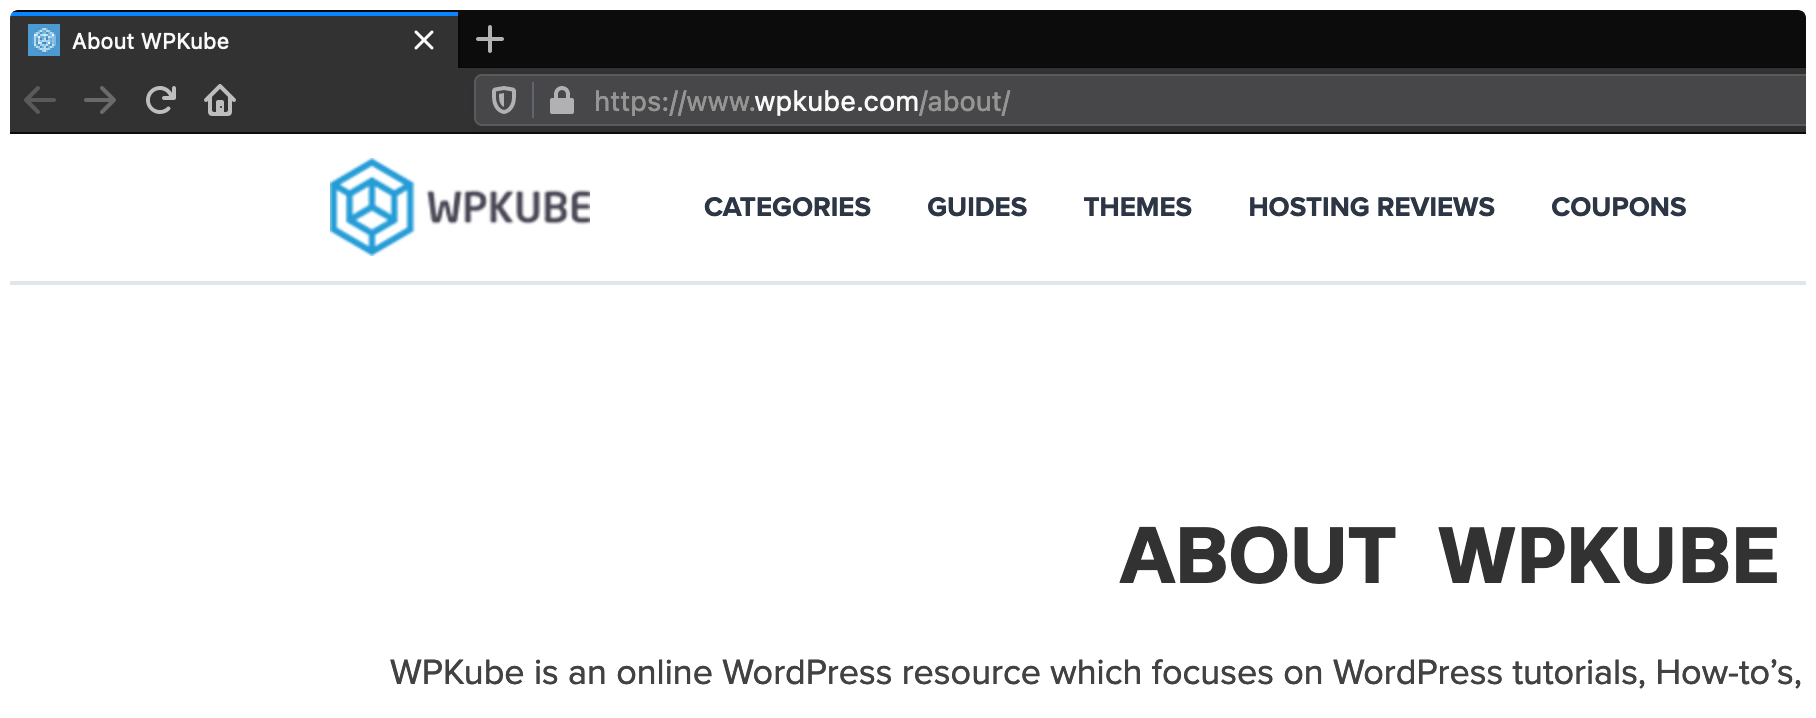 The WPKube About page.